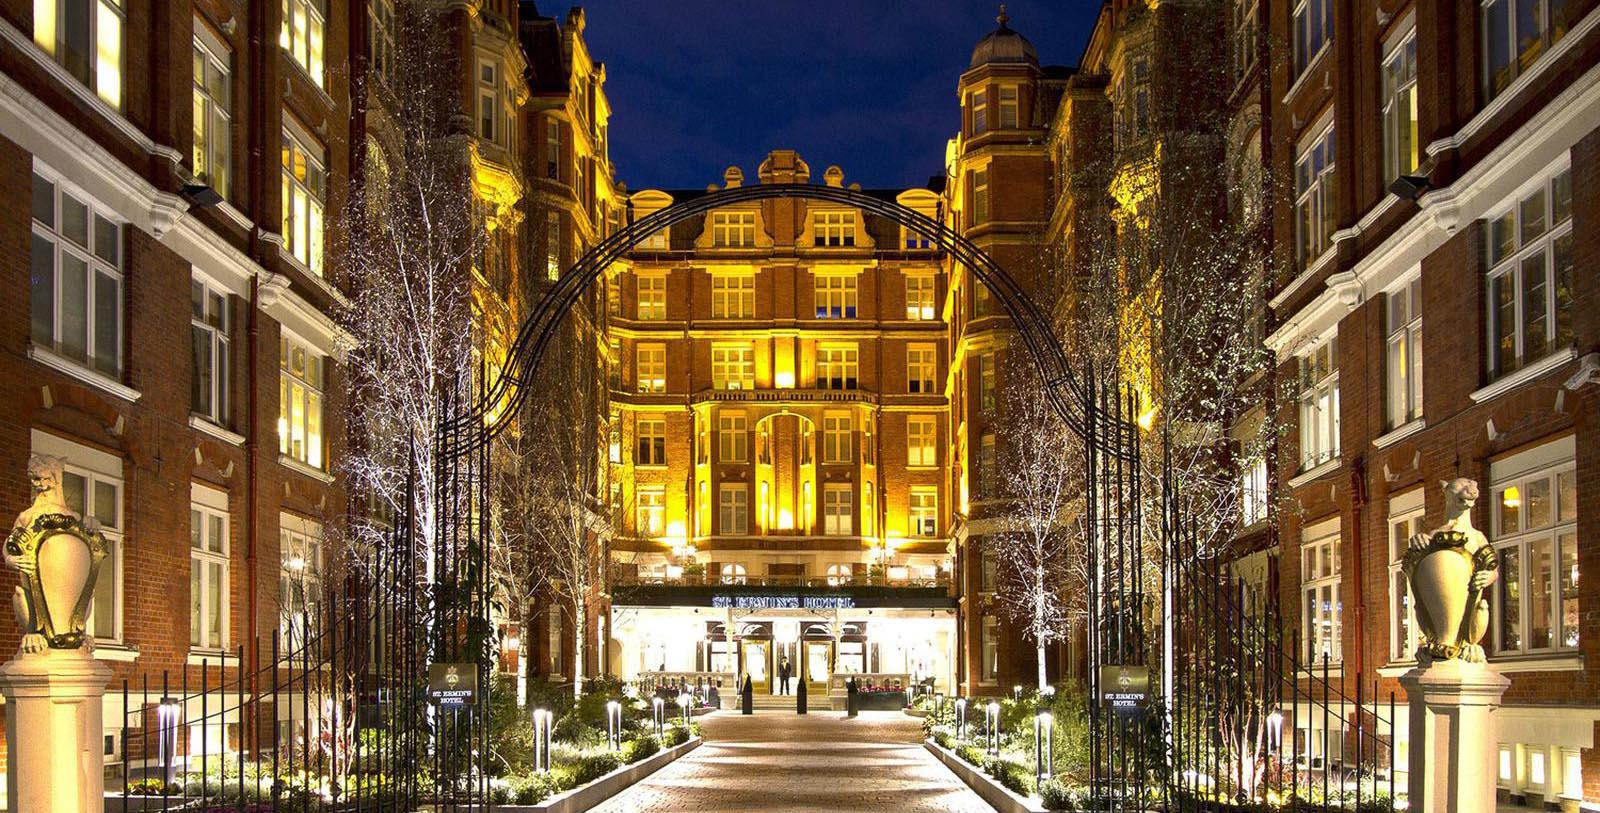 Image of Hotel Front Entrance at St. Ermin's Hotel, 1889, Member of Historic Hotels Worldwide, in London, England, United Kingdom, Special Offers, Discounted Rates, Families, Romantic Escape, Honeymoons, Anniversaries, Reunions